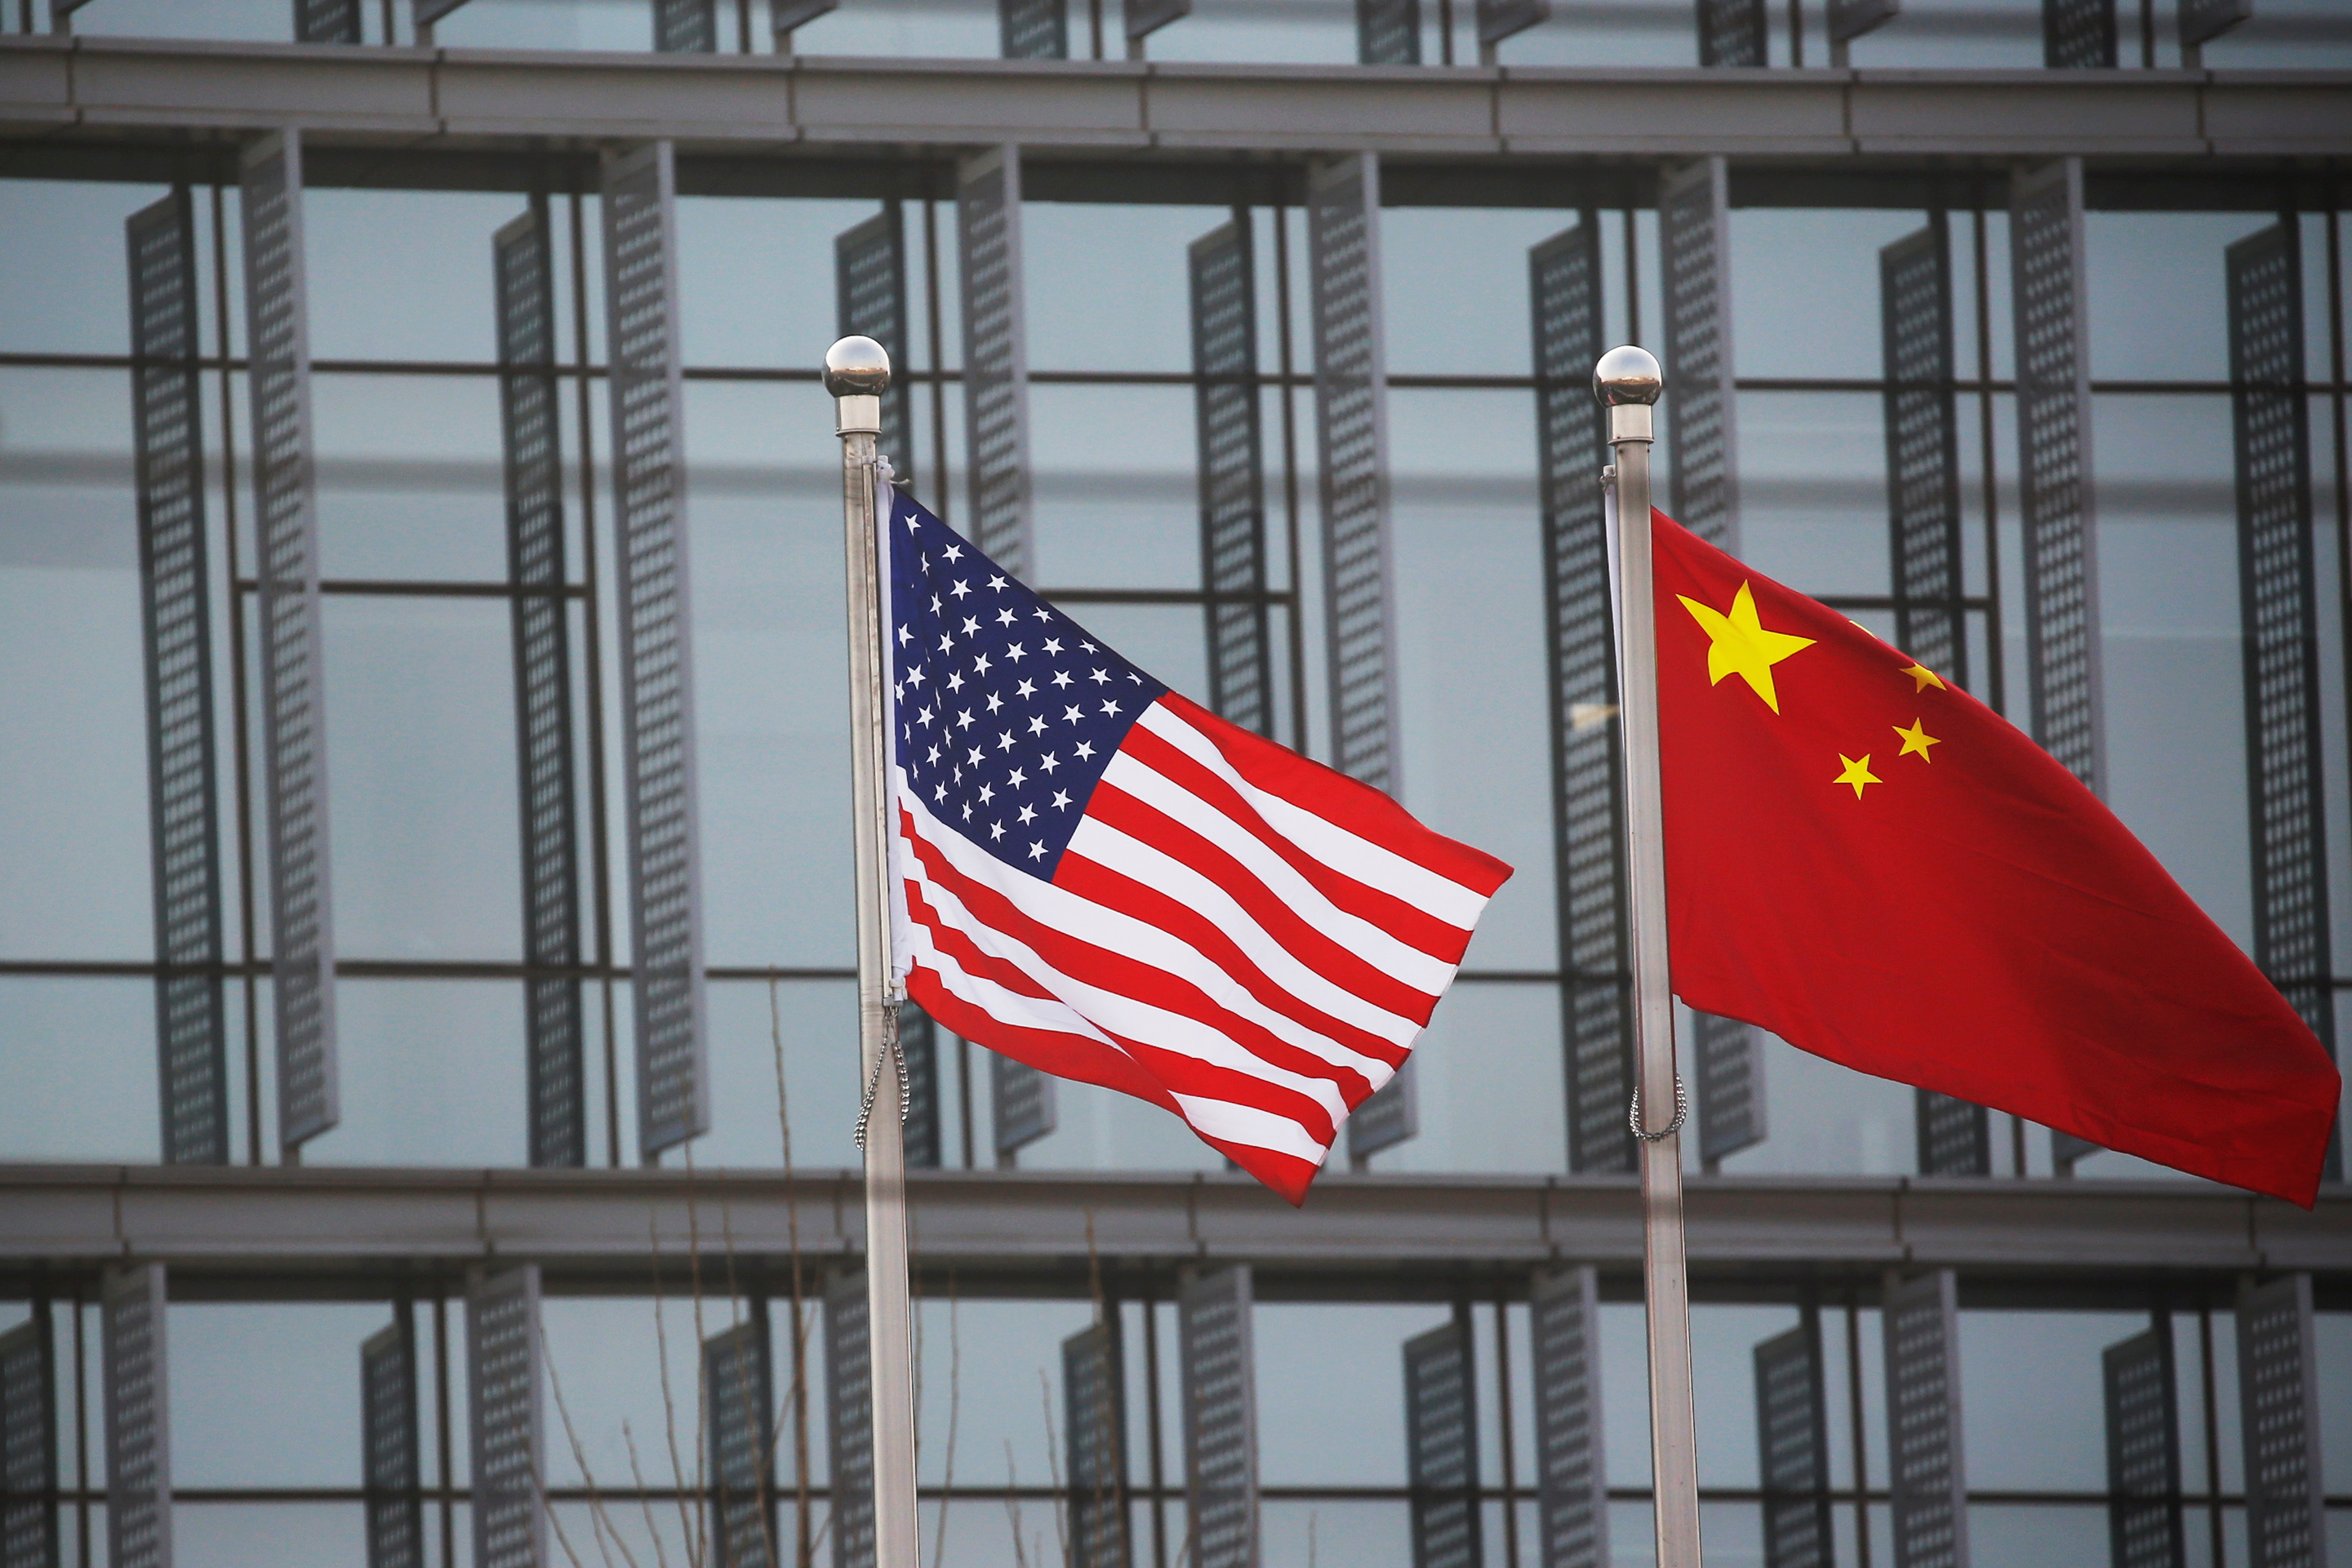 Chinese and U.S. flags flutter outside the building of an American company in Beijing, China, January 21, 2021. REUTERS/Tingshu Wang